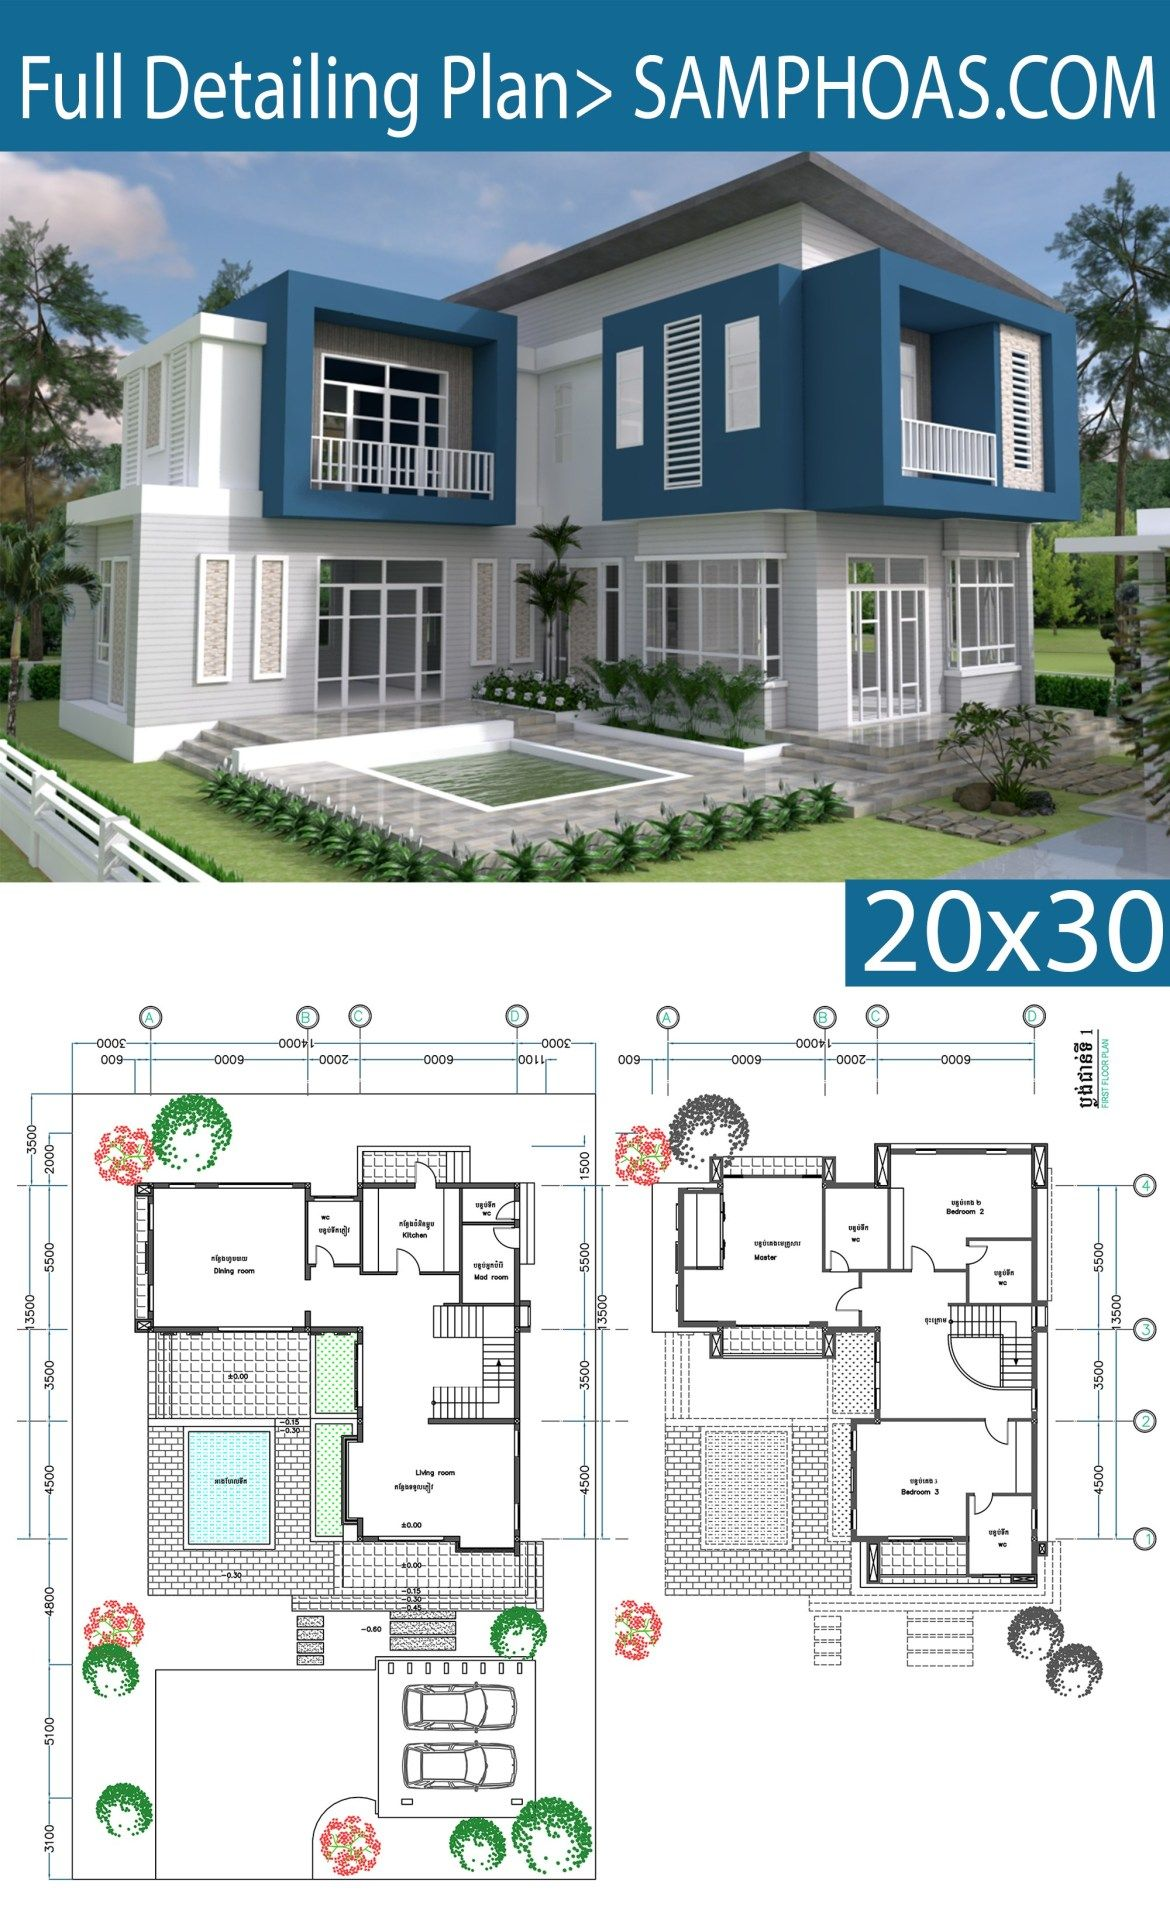 3 Bedrooms Modern Home Plan 14x13 5m Samphoas Plansearch Modern House Plans House Plans Modern House Design